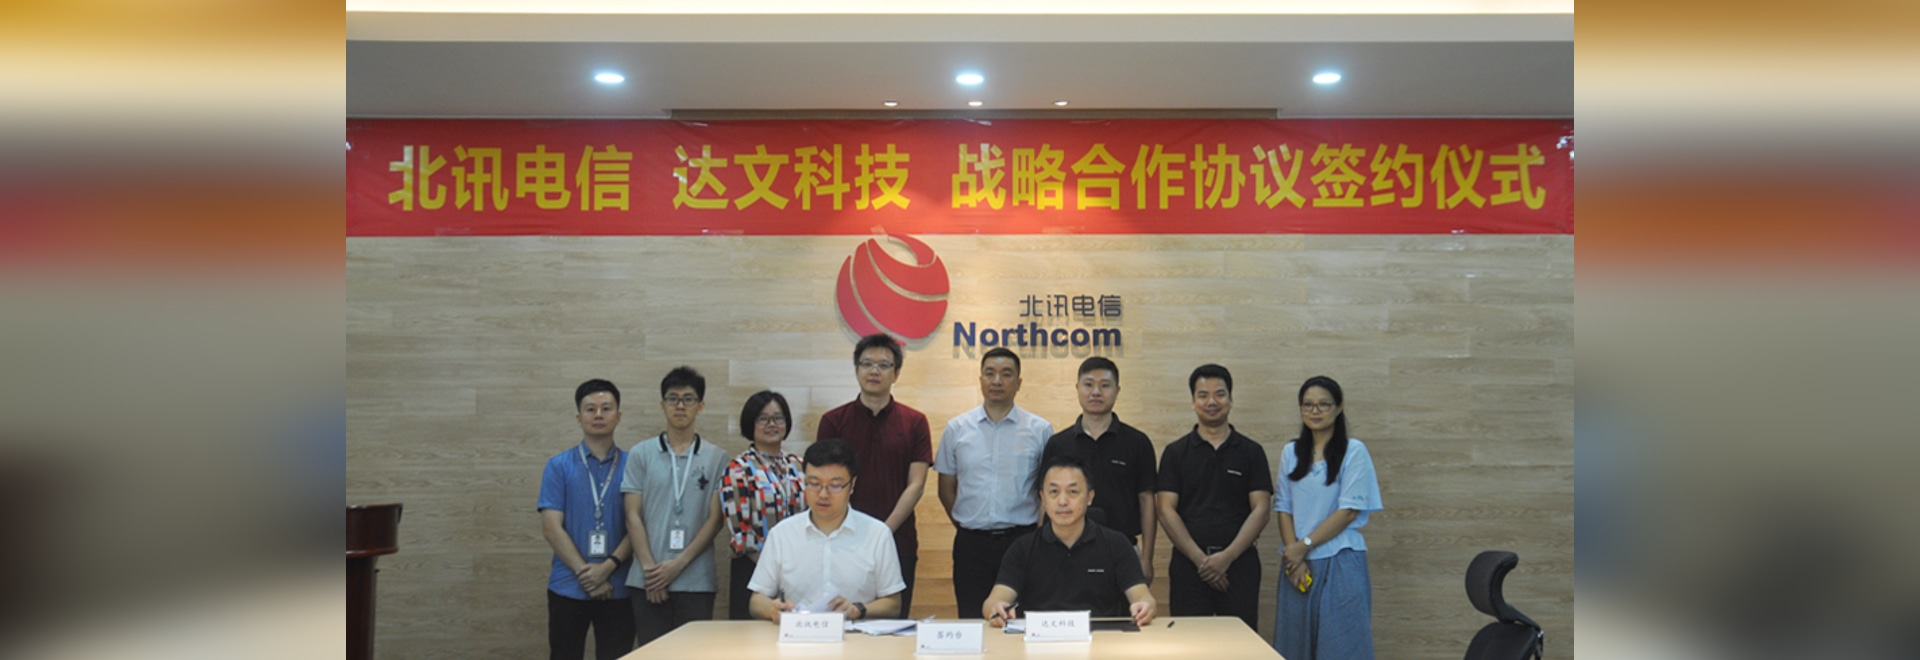 Darveen technology and Northcom signed a strategic cooperation agreement to jointly provide LTE private network solutions for industrial customers